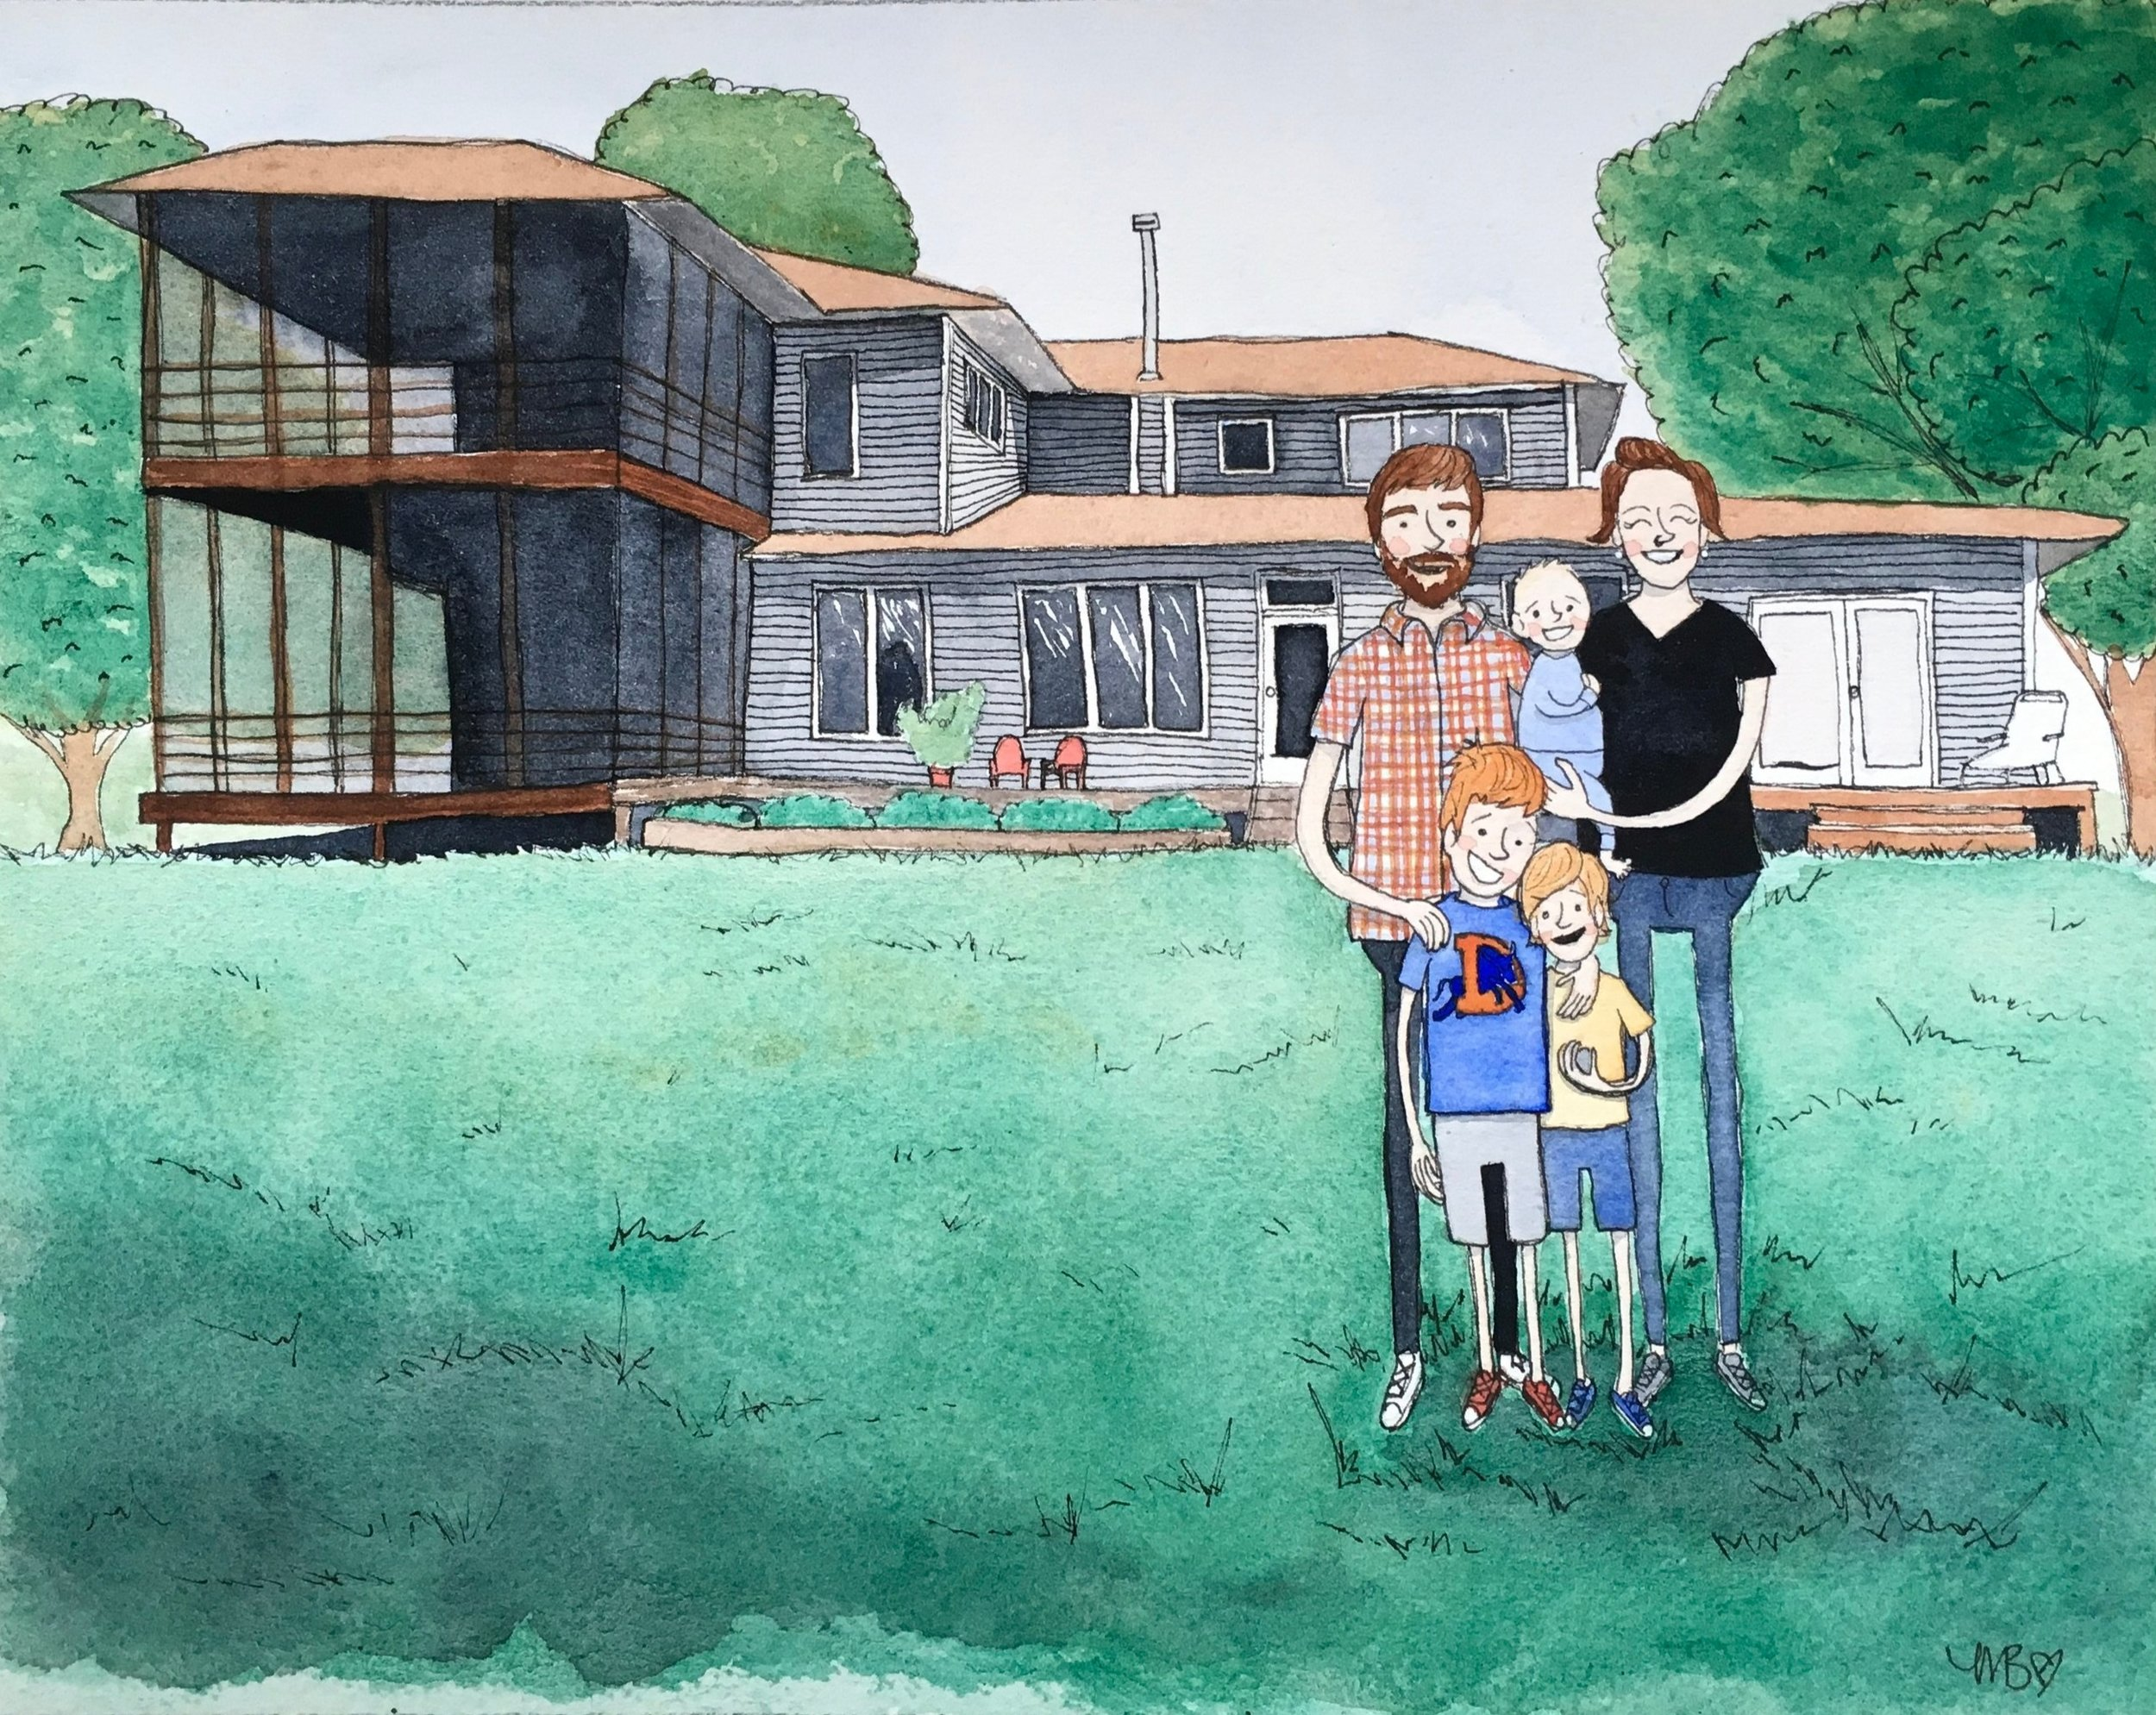 """Houses and Landscape Backgrounds - Setting your portrait in a favorite location, new house, old house, vacation spot, etc. takes it to a new level!Hand-painted digital art professionally printed on archival fine art paper. Includes one 8x10"""" portrait with up to five subjects. $400Additional subjects (max 9): $15 ea.Additional 8x10"""" prints: $25 ea."""